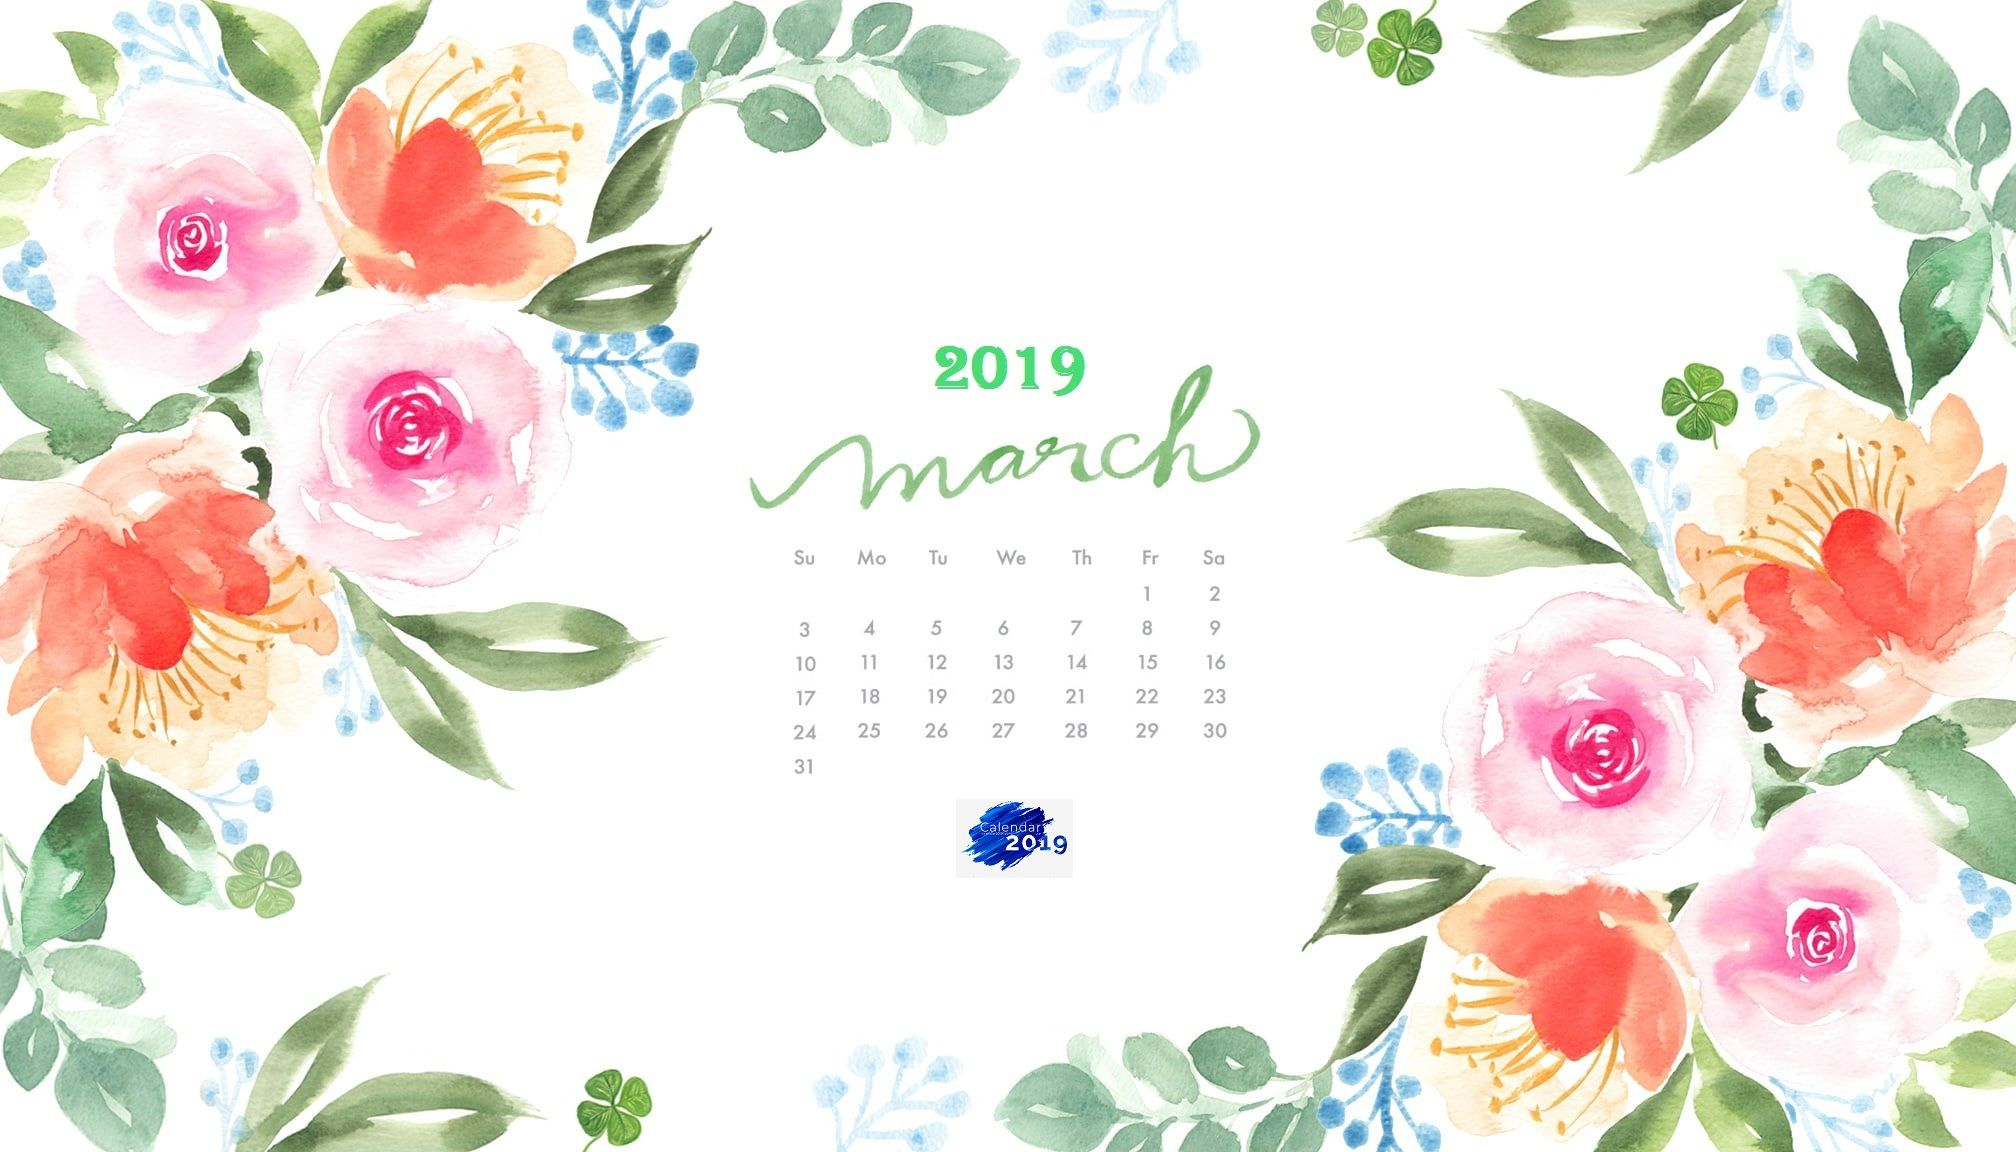 March 2019 Watercolor Calendar Wallpaper Desktop